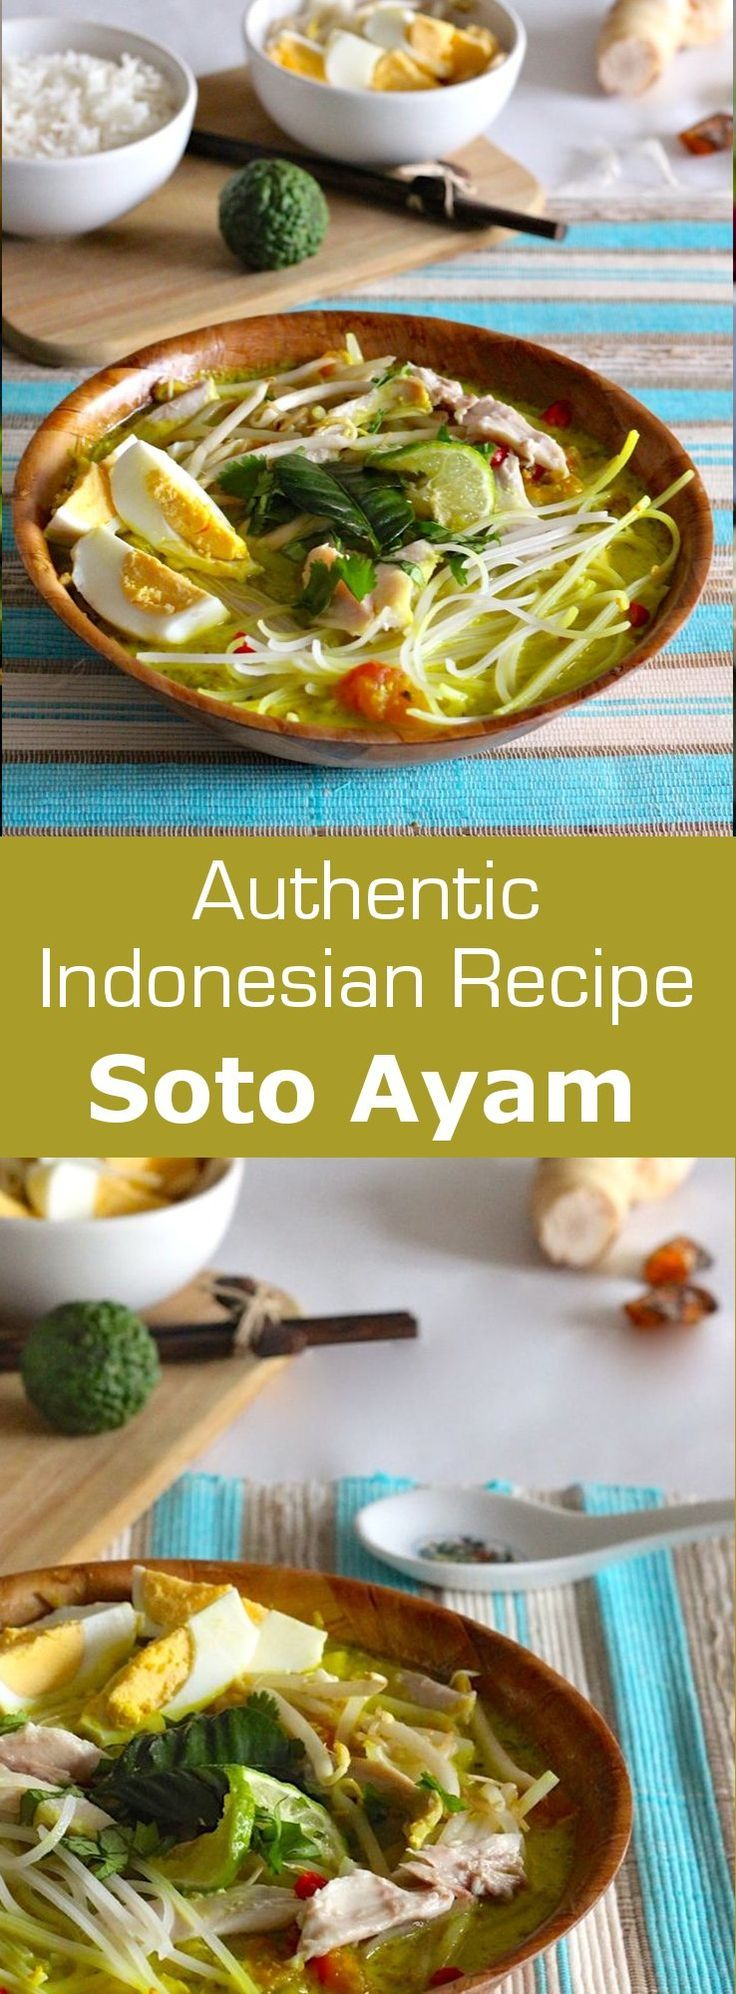 Soto Ayam is a traditional Indonesian soup deliciously flavored, also served in Malaysia, Singapore and Suriname. Use bone broth in place of the water!